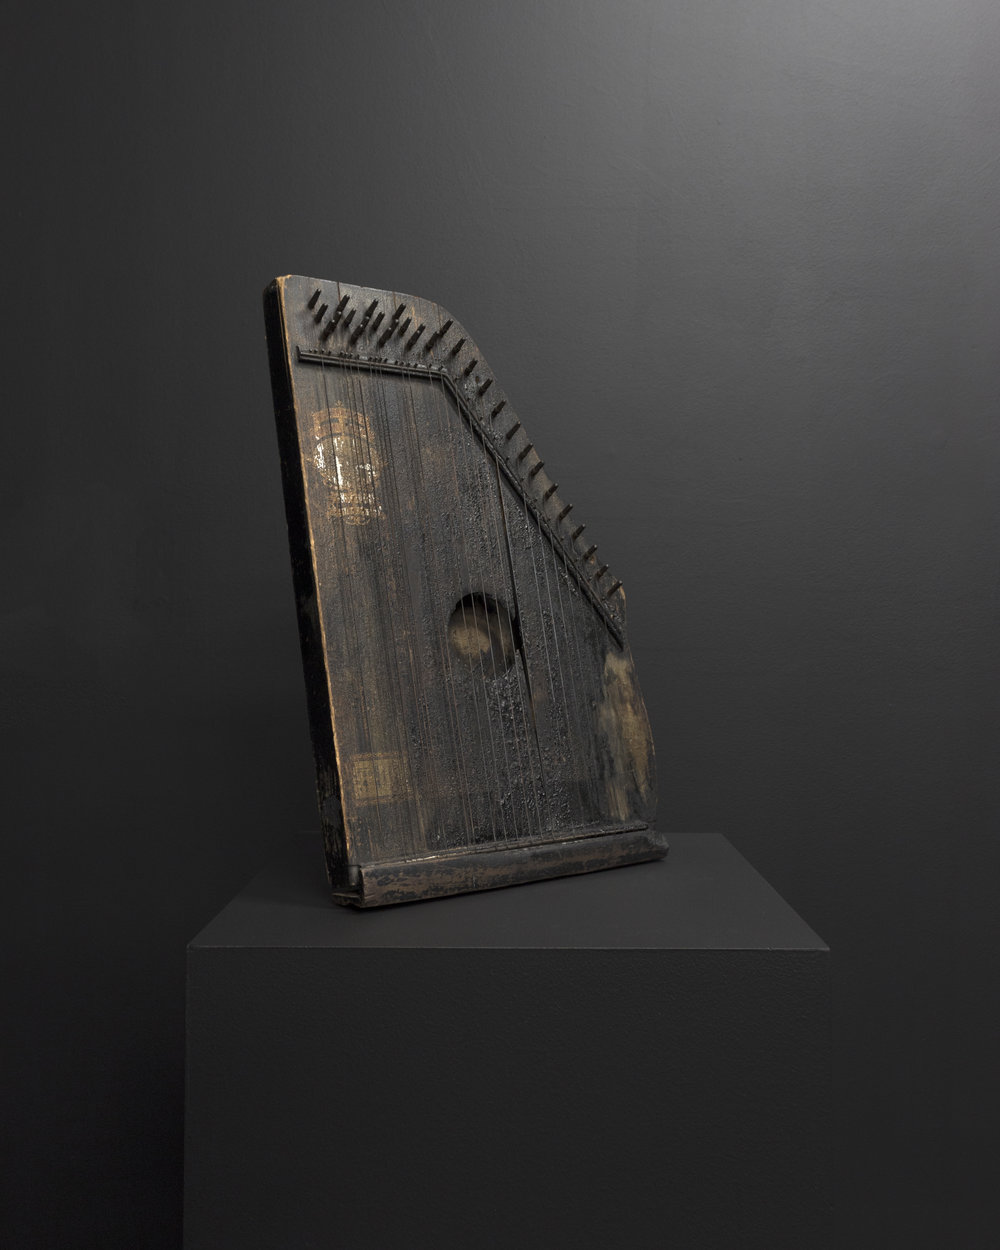 Micca Schippa,  when mineral rich groundwater permeates organic materials and fills the empty spaces, a fossil is formed , Oscar Schmidt Menzenhaurer Autoharp. 2018